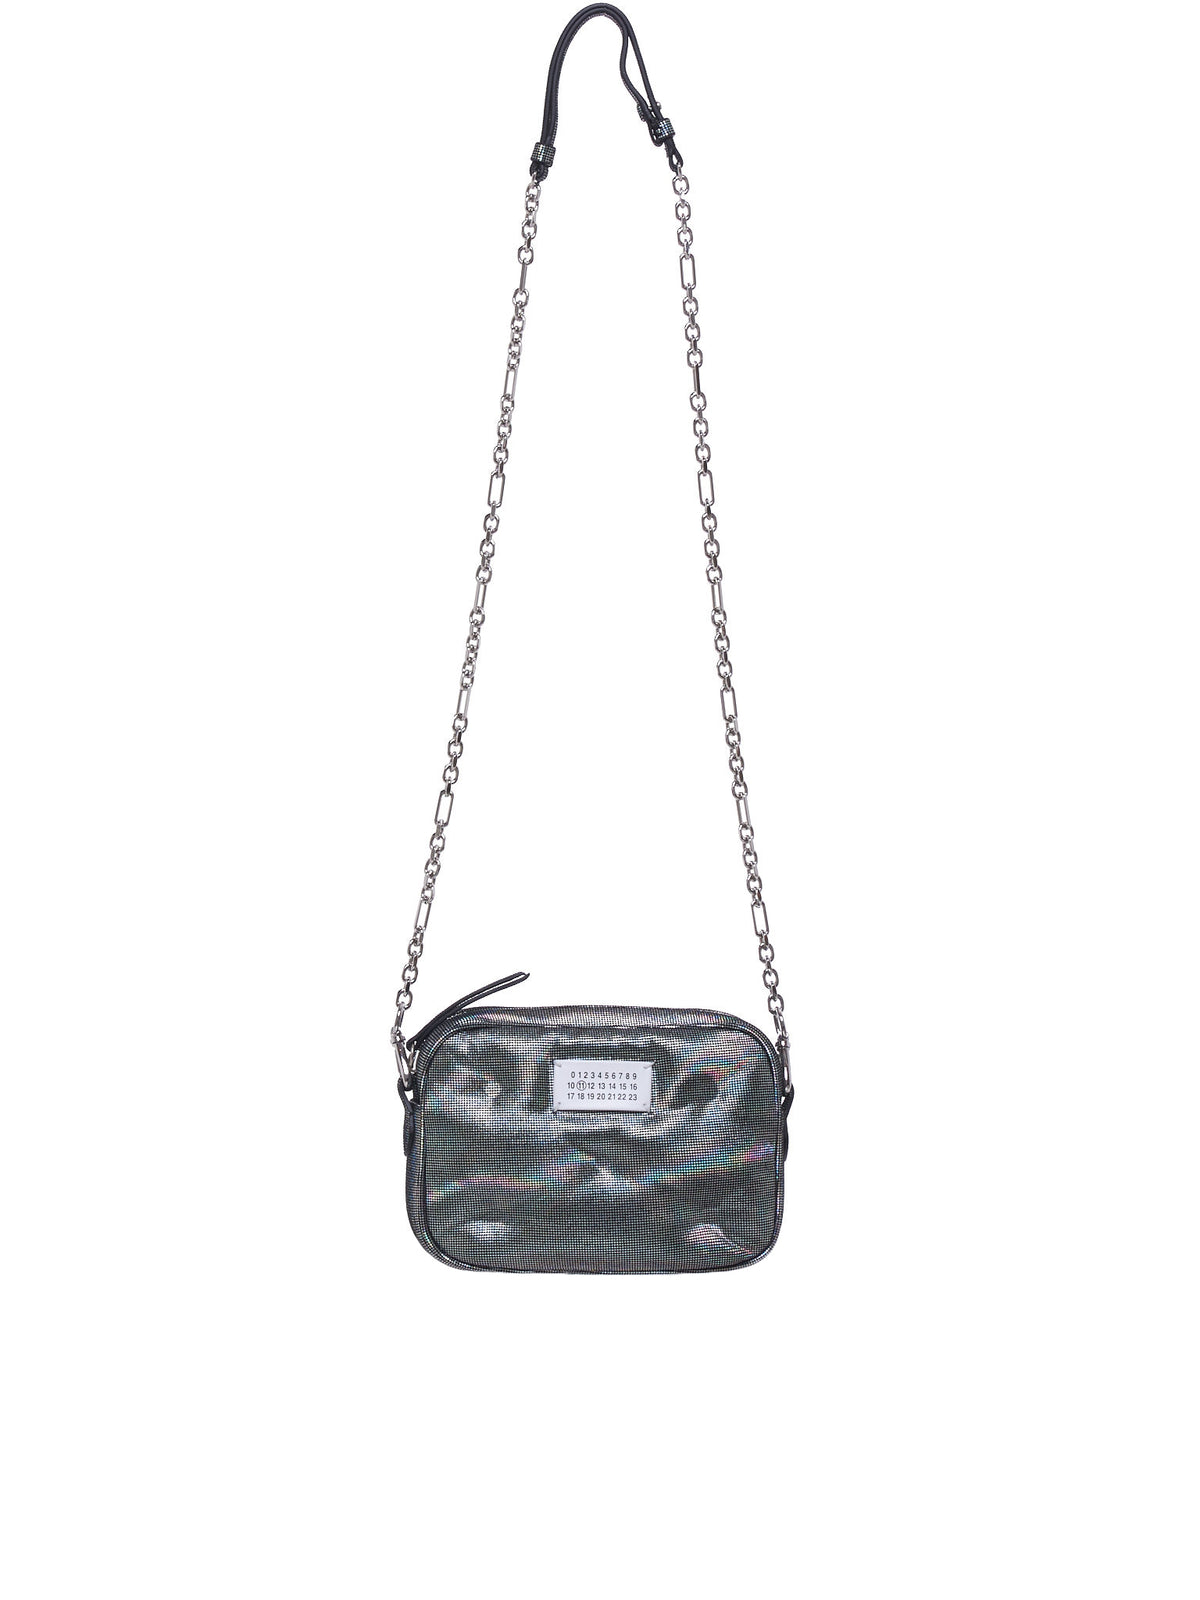 Iridescent Clutch Bag (S56WG0108-P3028-H4389-GRAY)